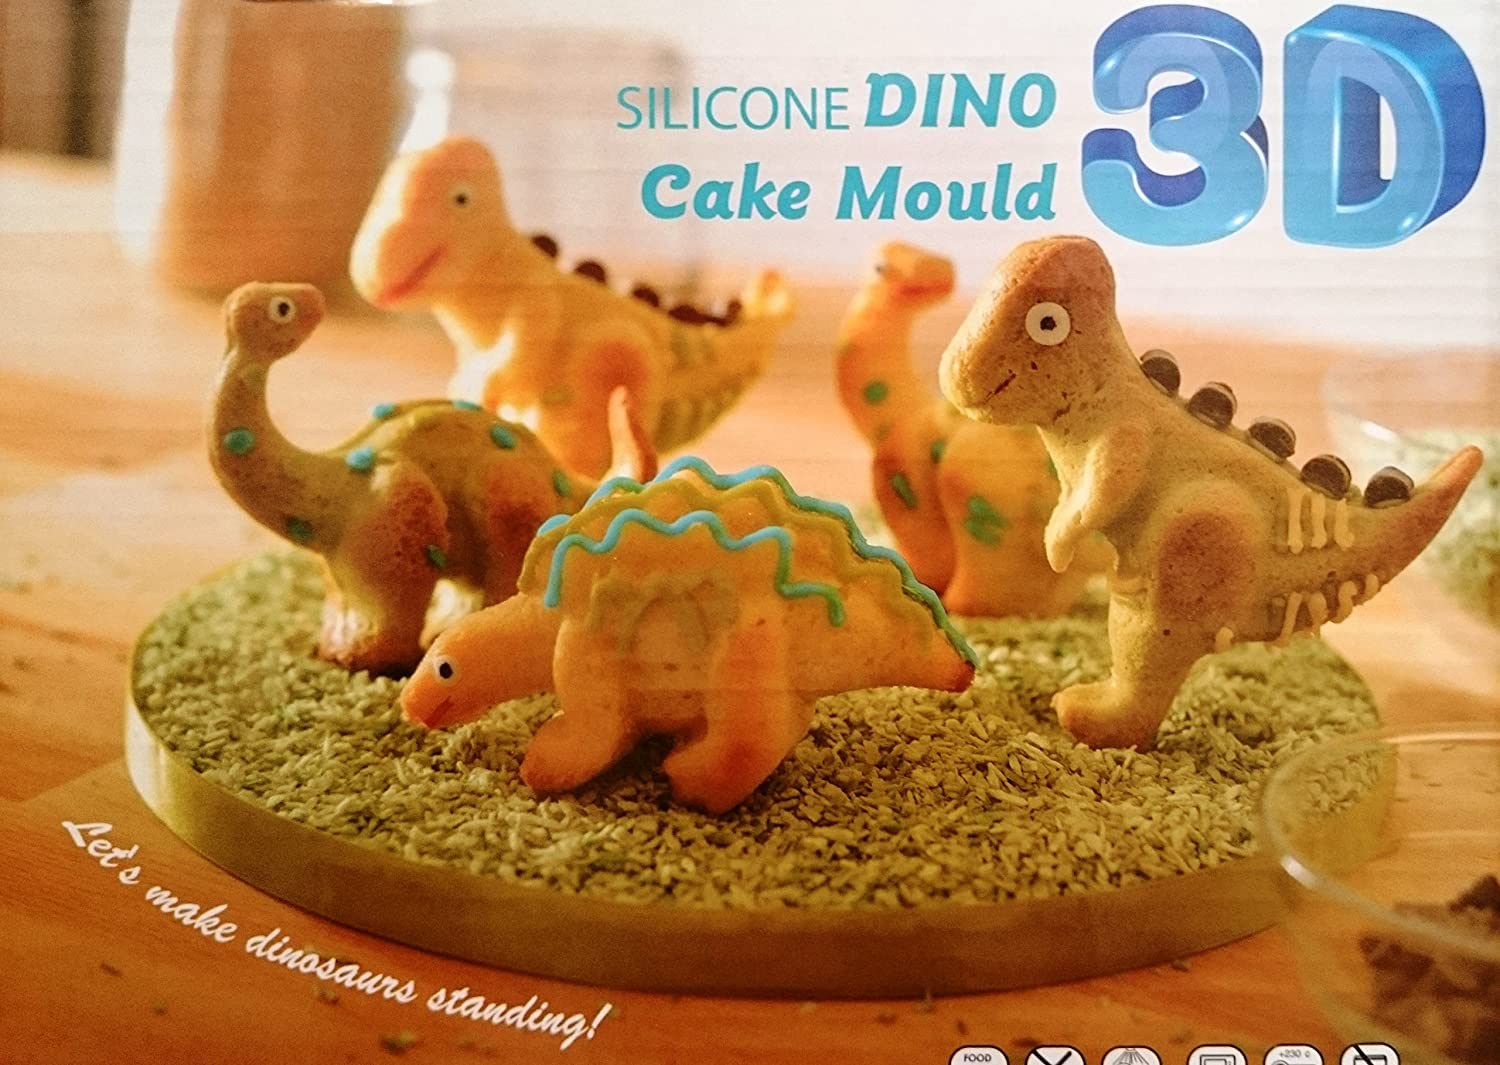 Amazoncom Silicone 3D Dino Dinosaur Cake Mould for Chocolate Jelly